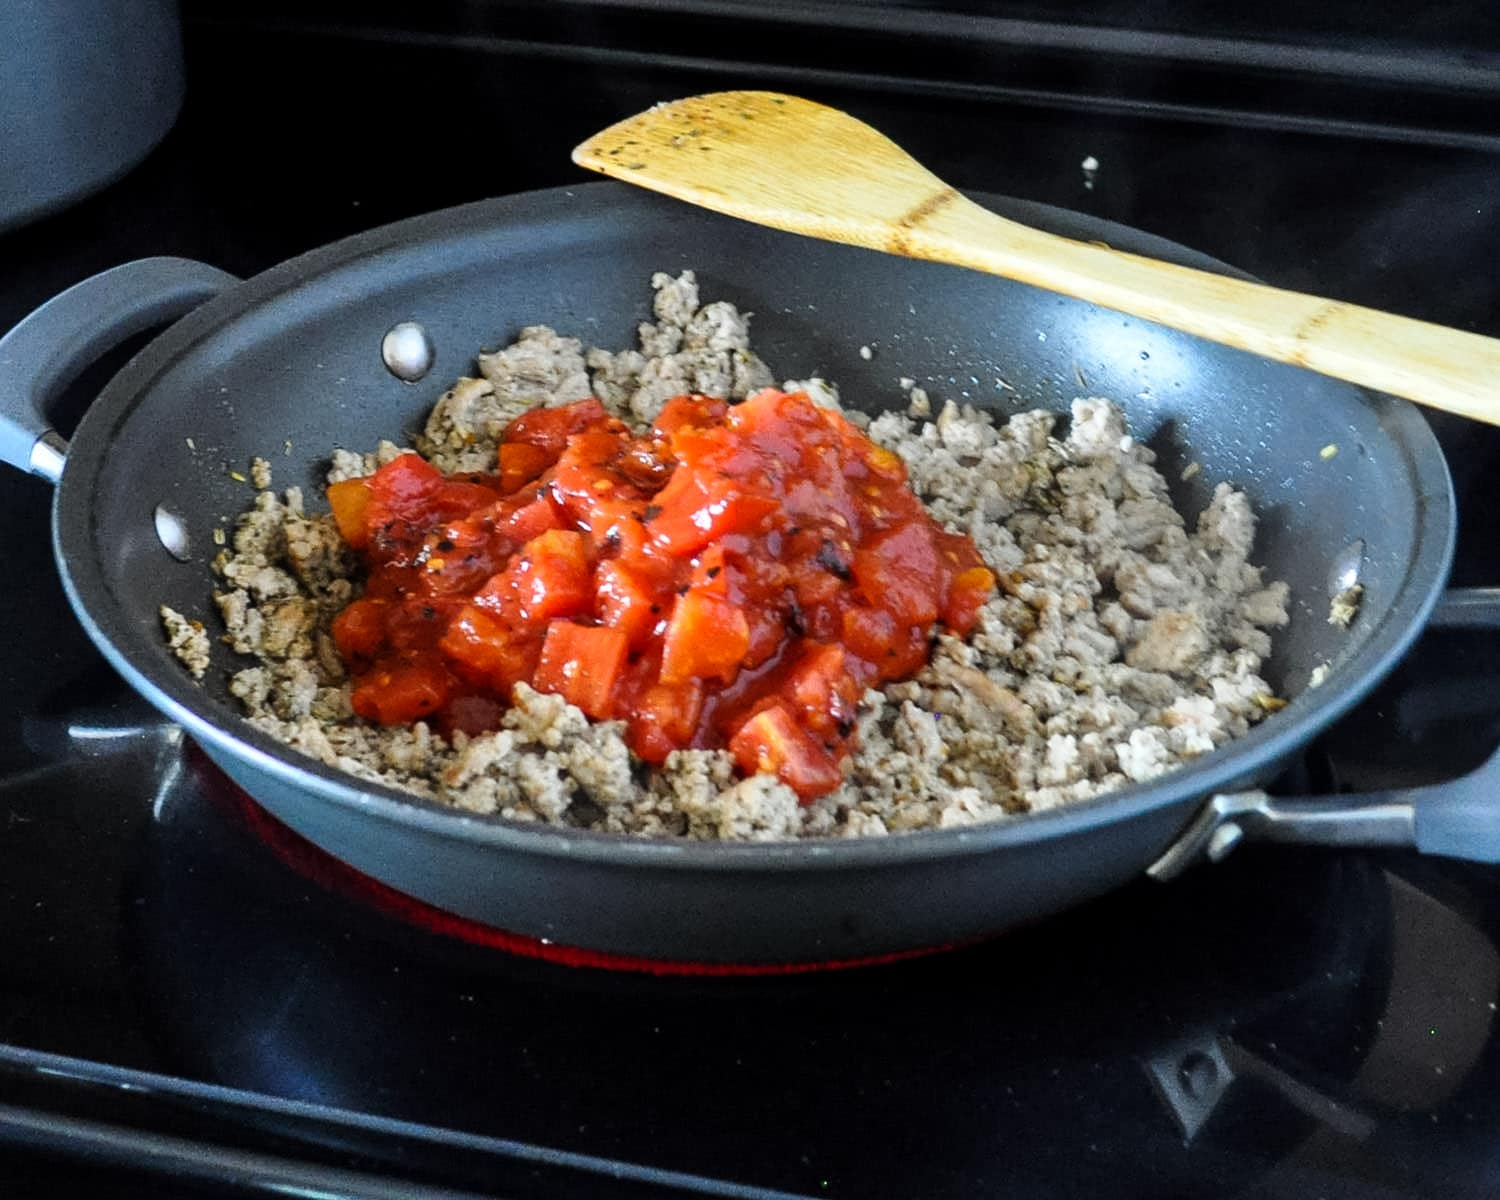 ground turkey and spices with tomatoes cooking in a skillet